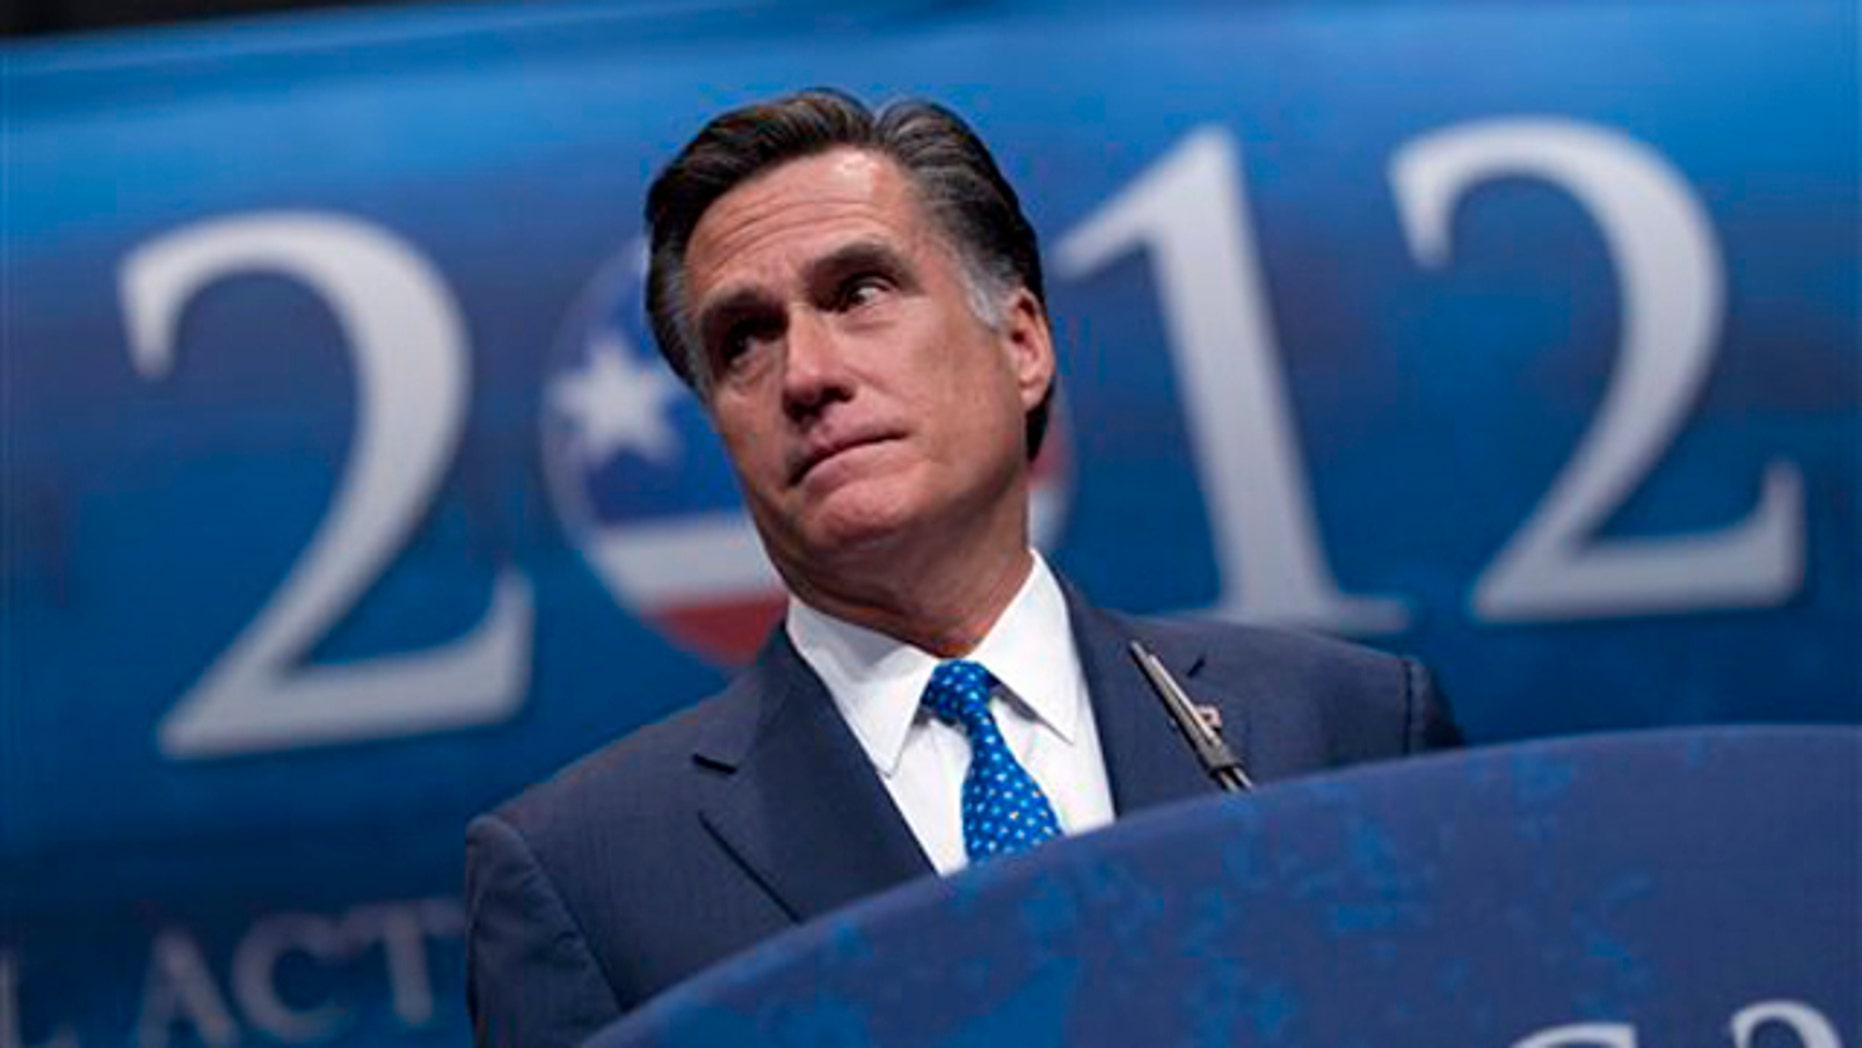 Feb. 10, 2012: Mitt Romney addresses the Conservative Political Action Conference (CPAC) in Washington.